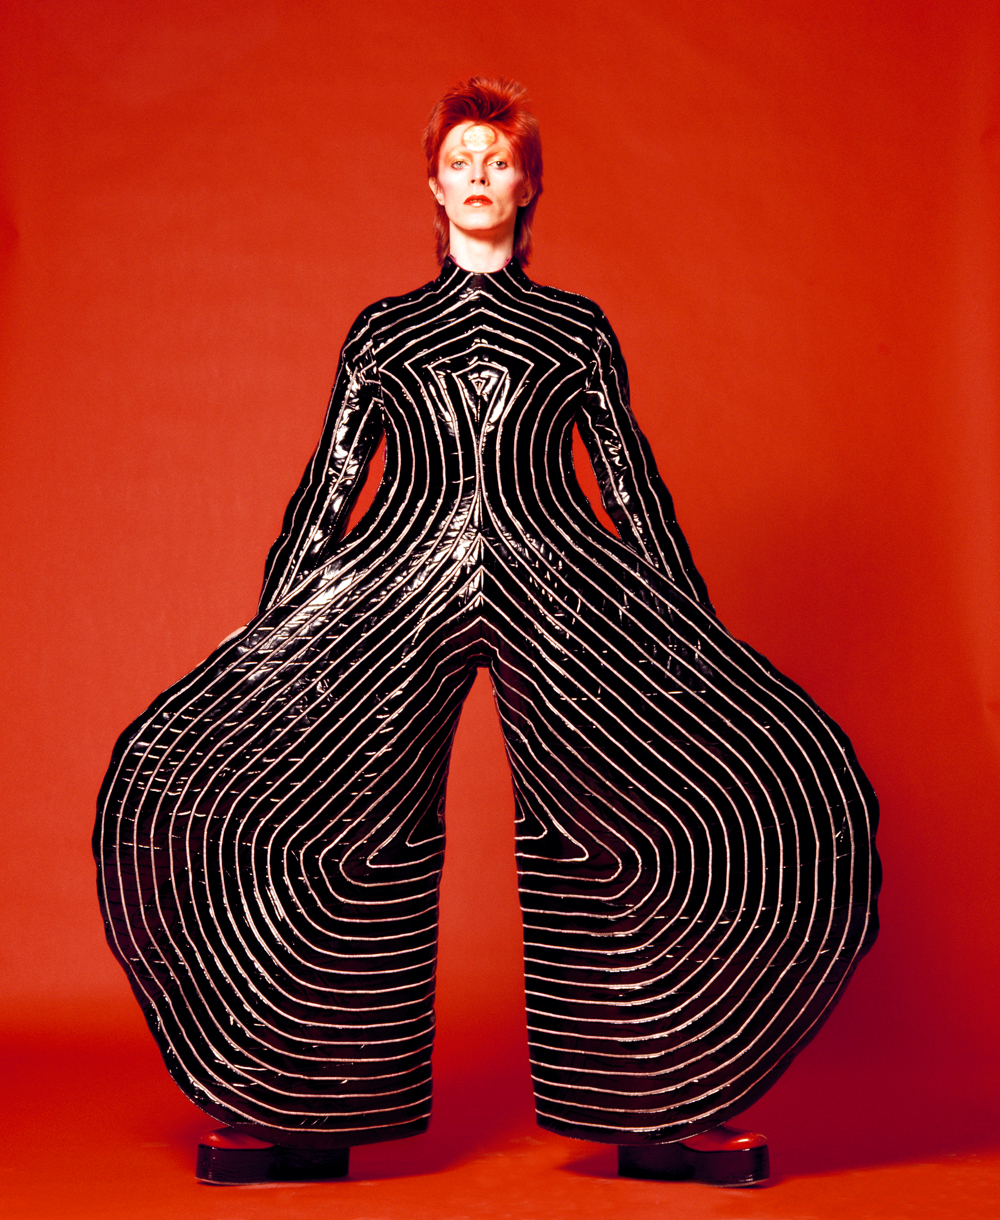 """David Bowie is"" @ Victoria and Albert Museum, London: david_bowie_11_20130218_1371902794.jpg"